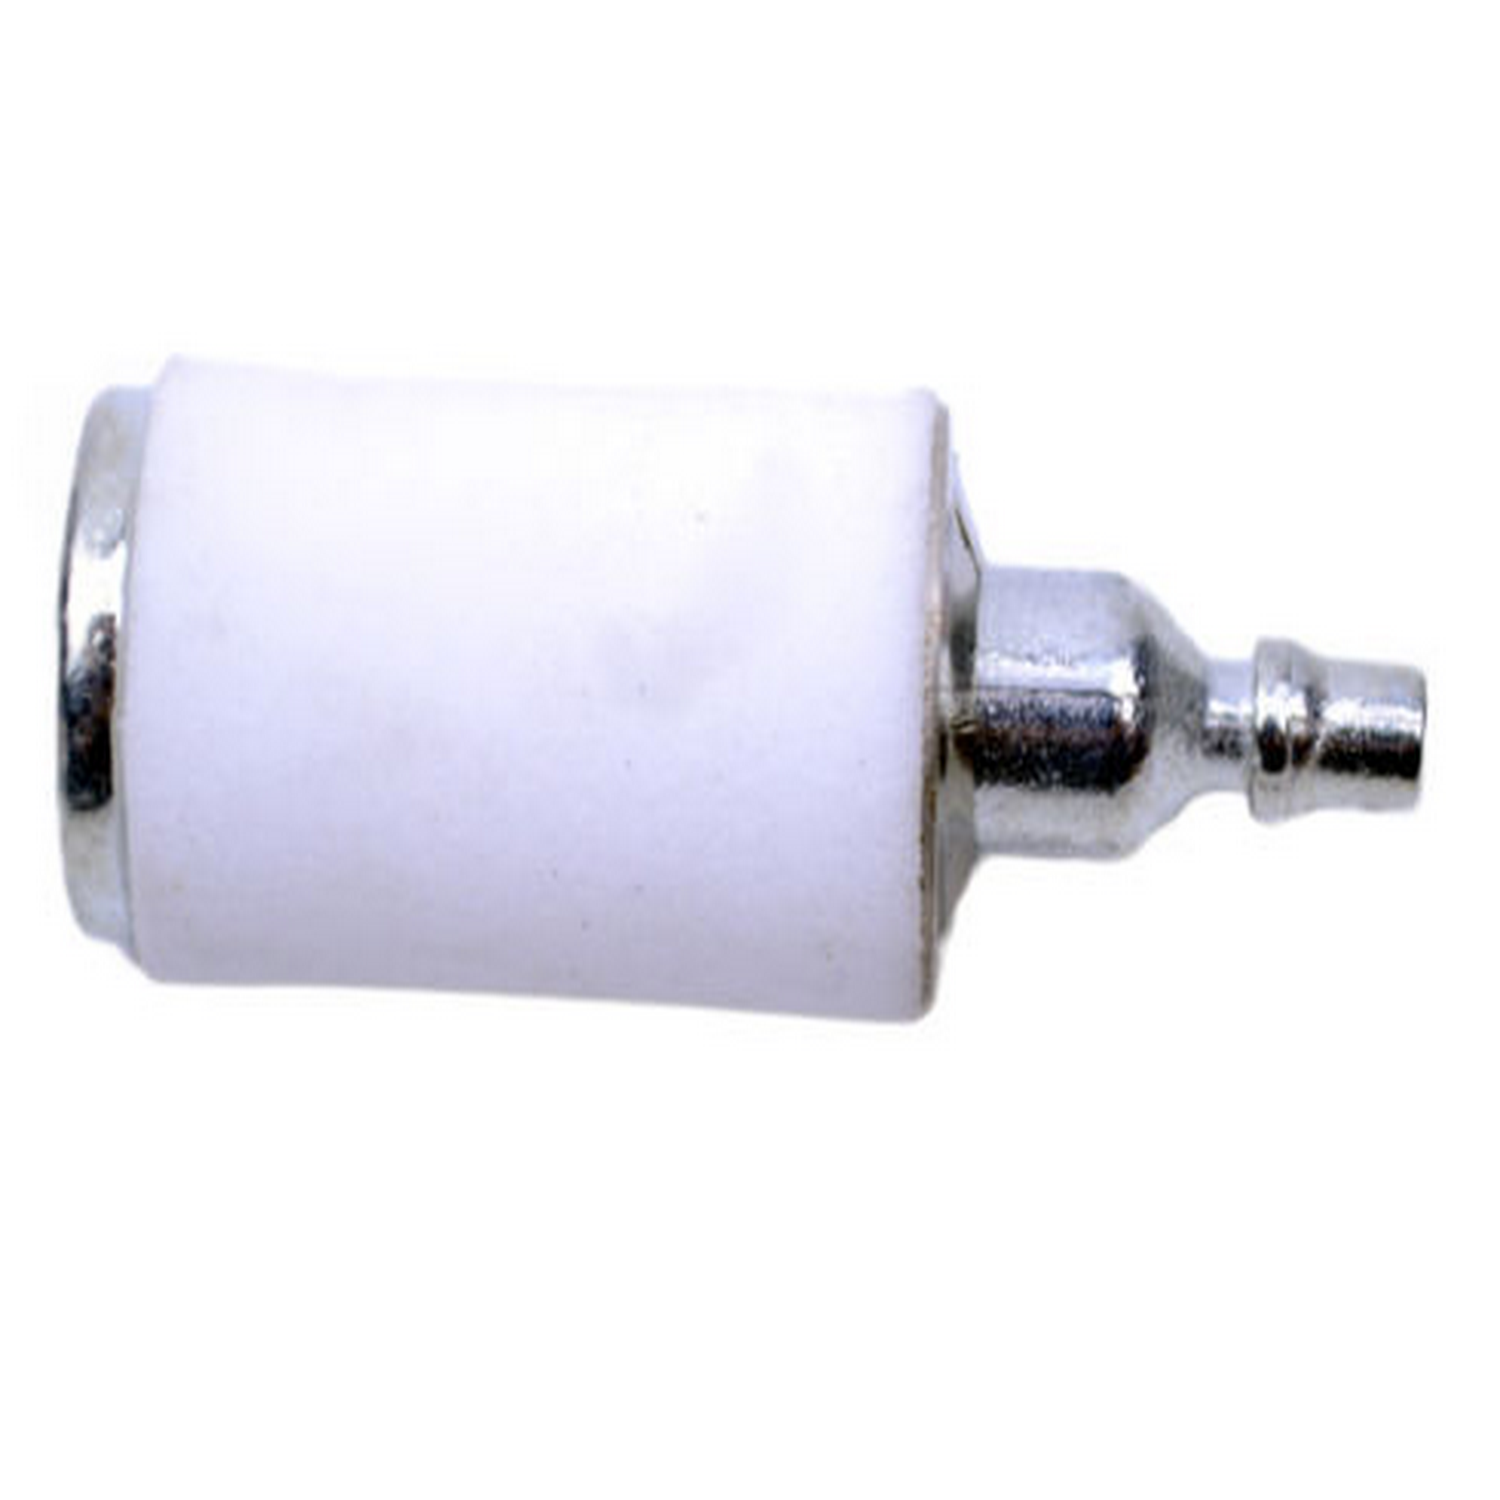 Trimmers Chainsaws #530095646 Fuel Filter for POULAN Blowers